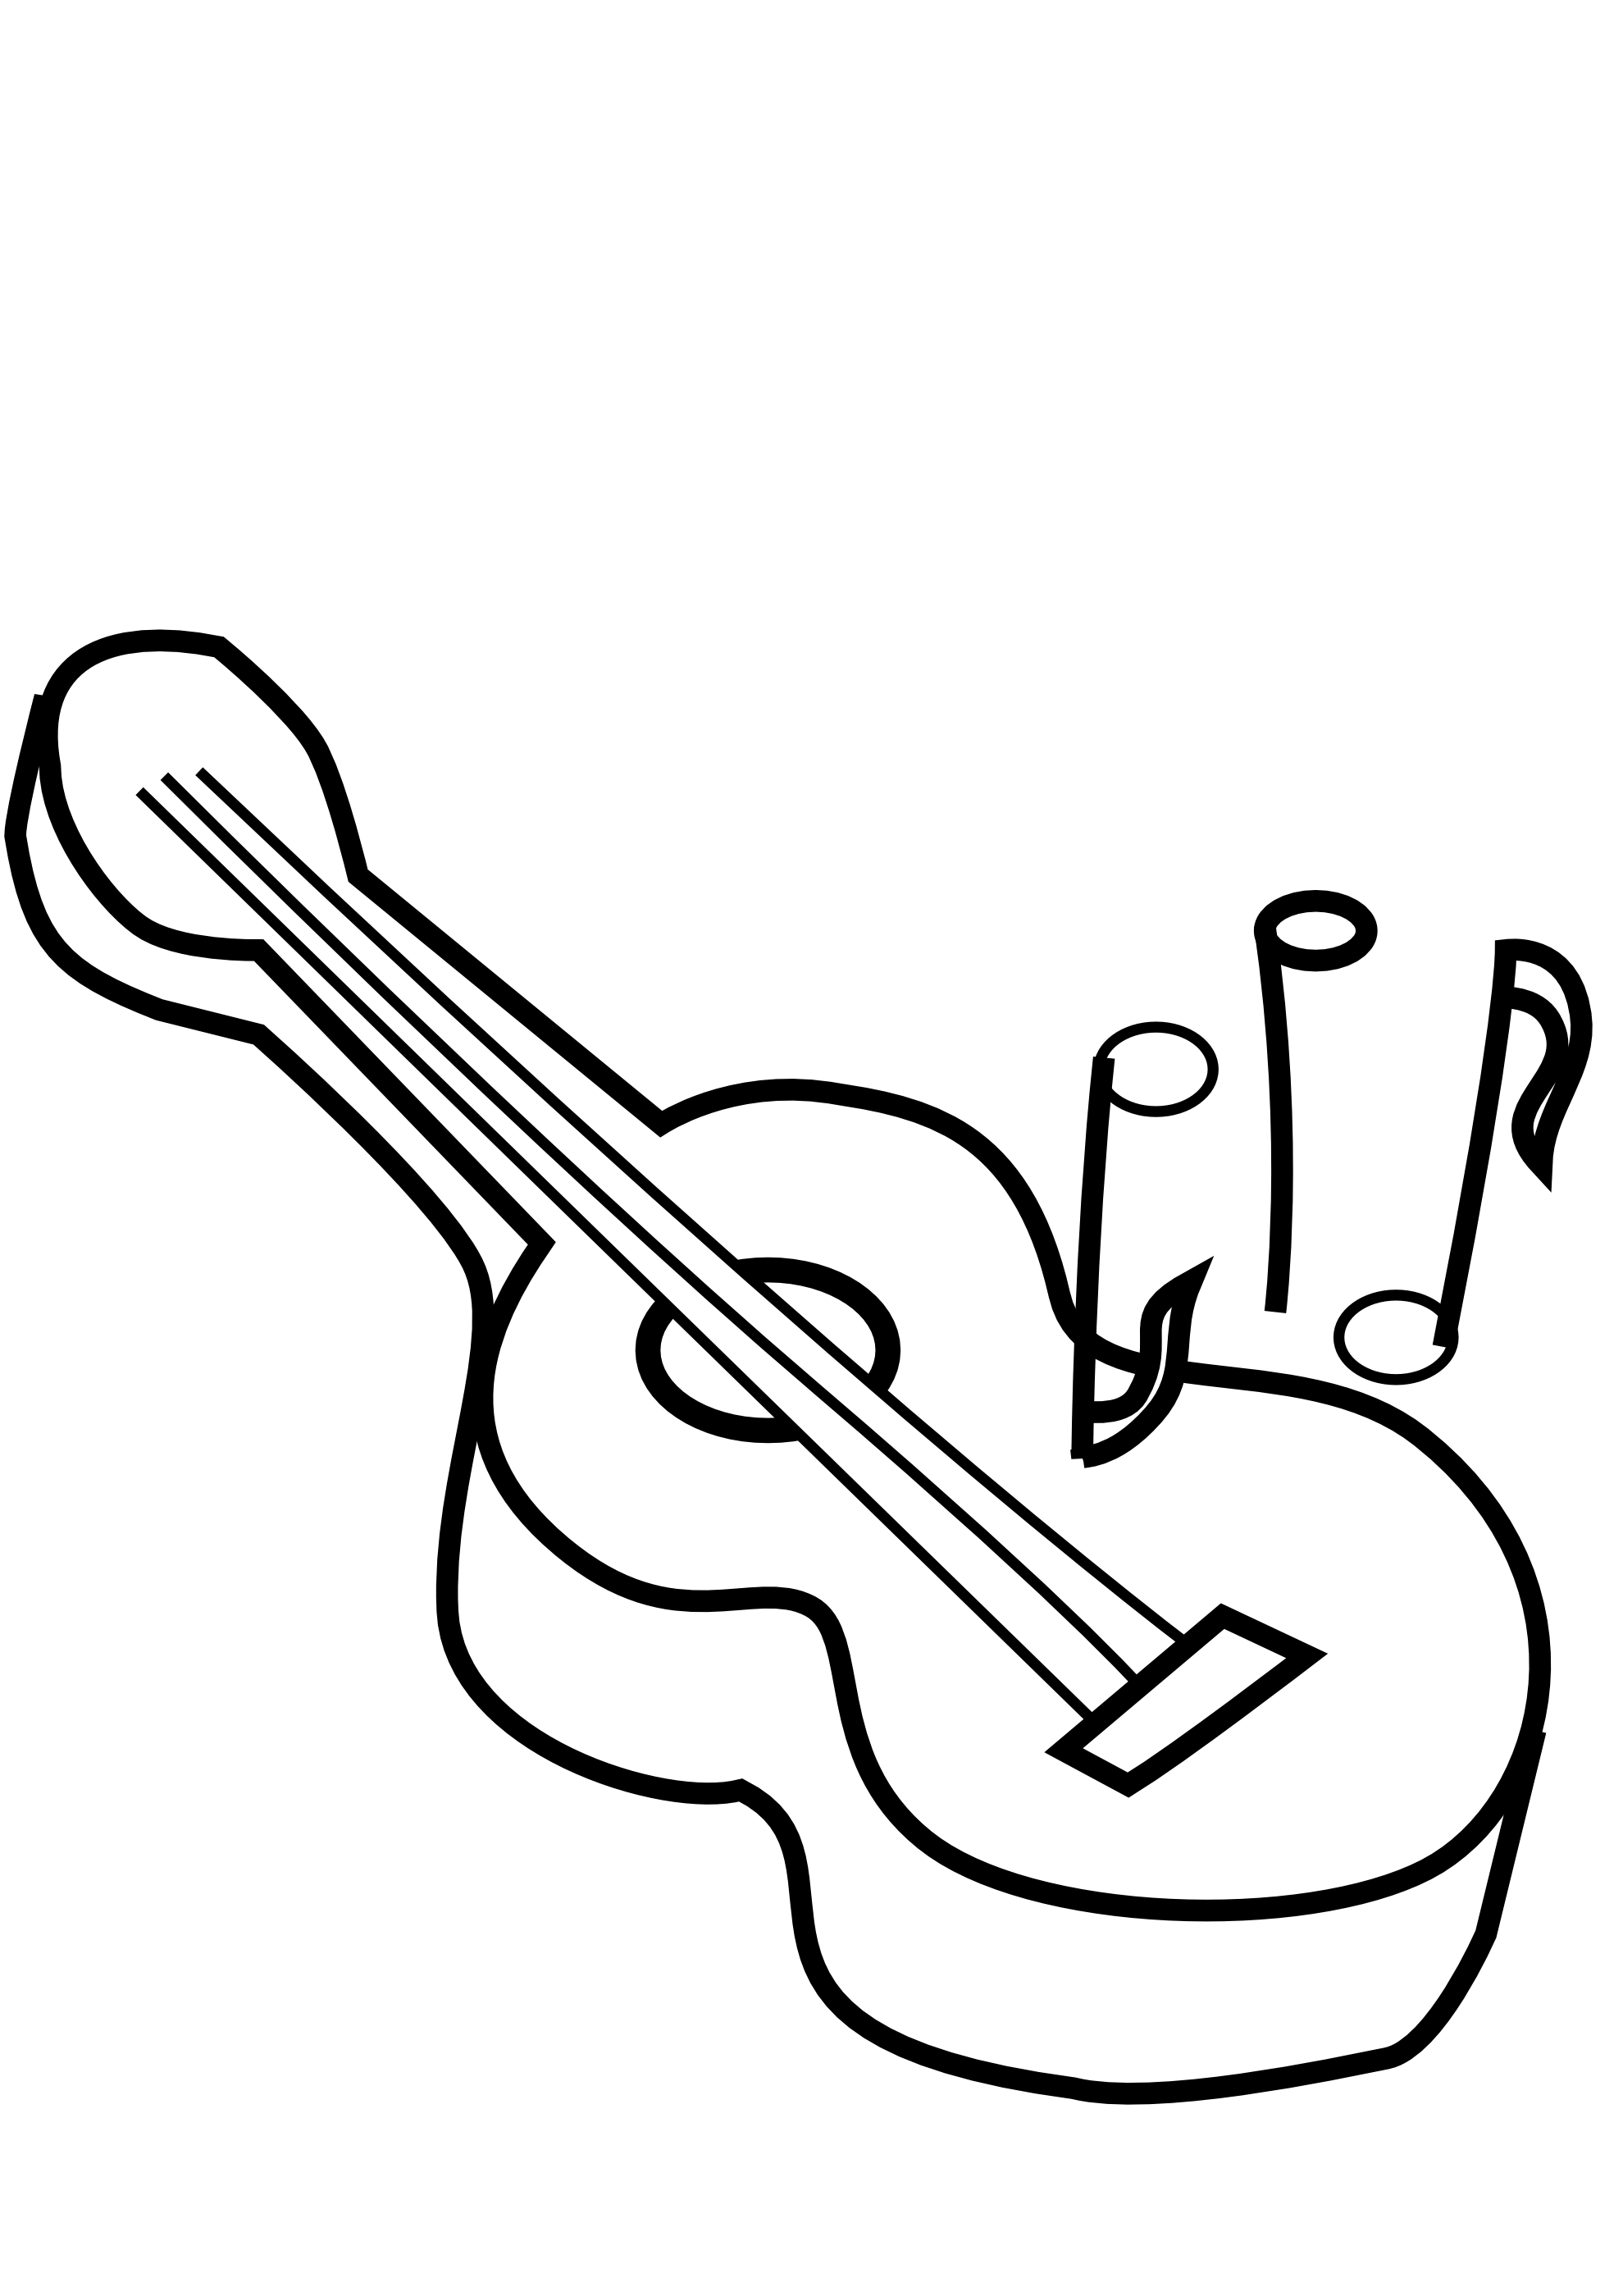 Playing guitar clipart black and white graphic transparent stock Free Guitar Black Cliparts, Download Free Clip Art, Free ... graphic transparent stock